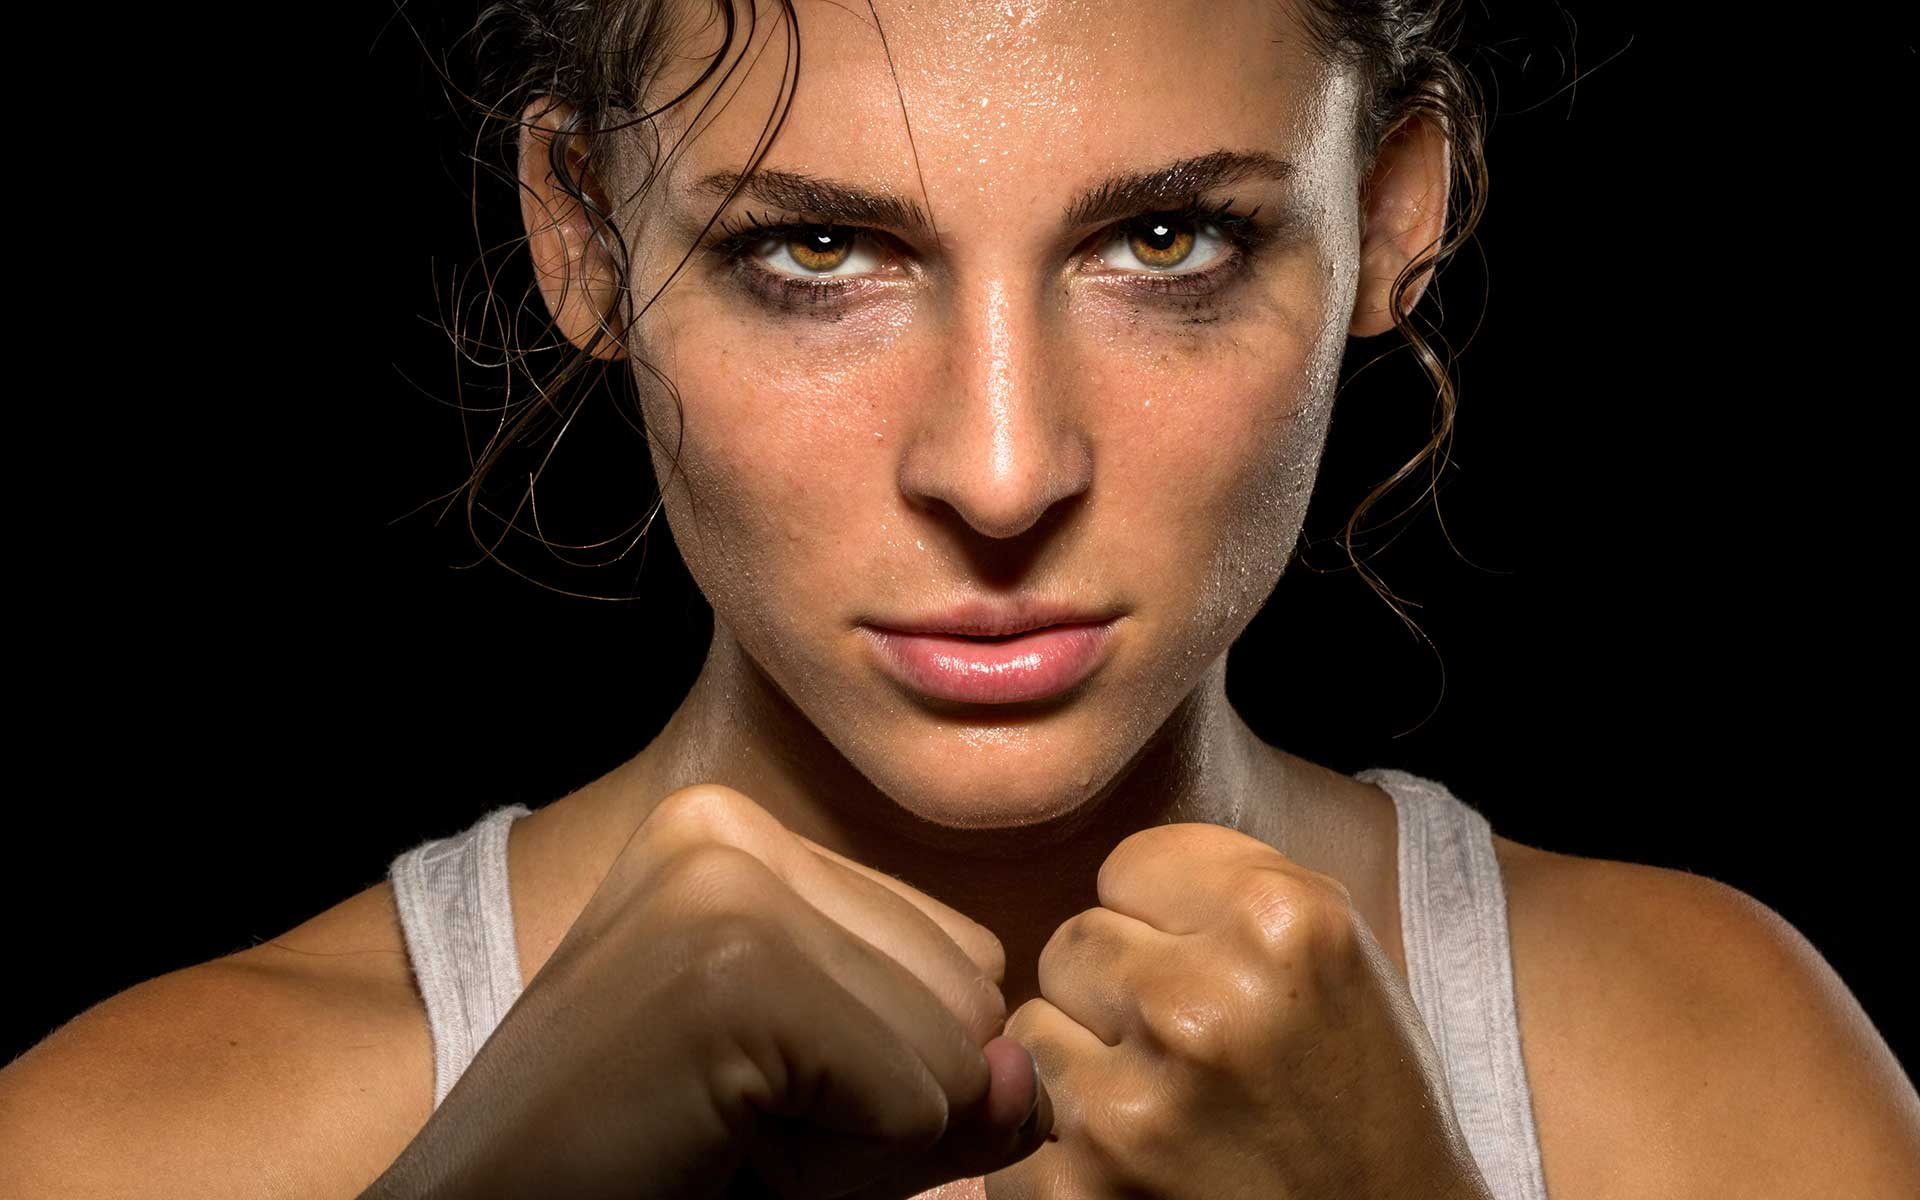 What are the differences between Assault and Self-Defense?